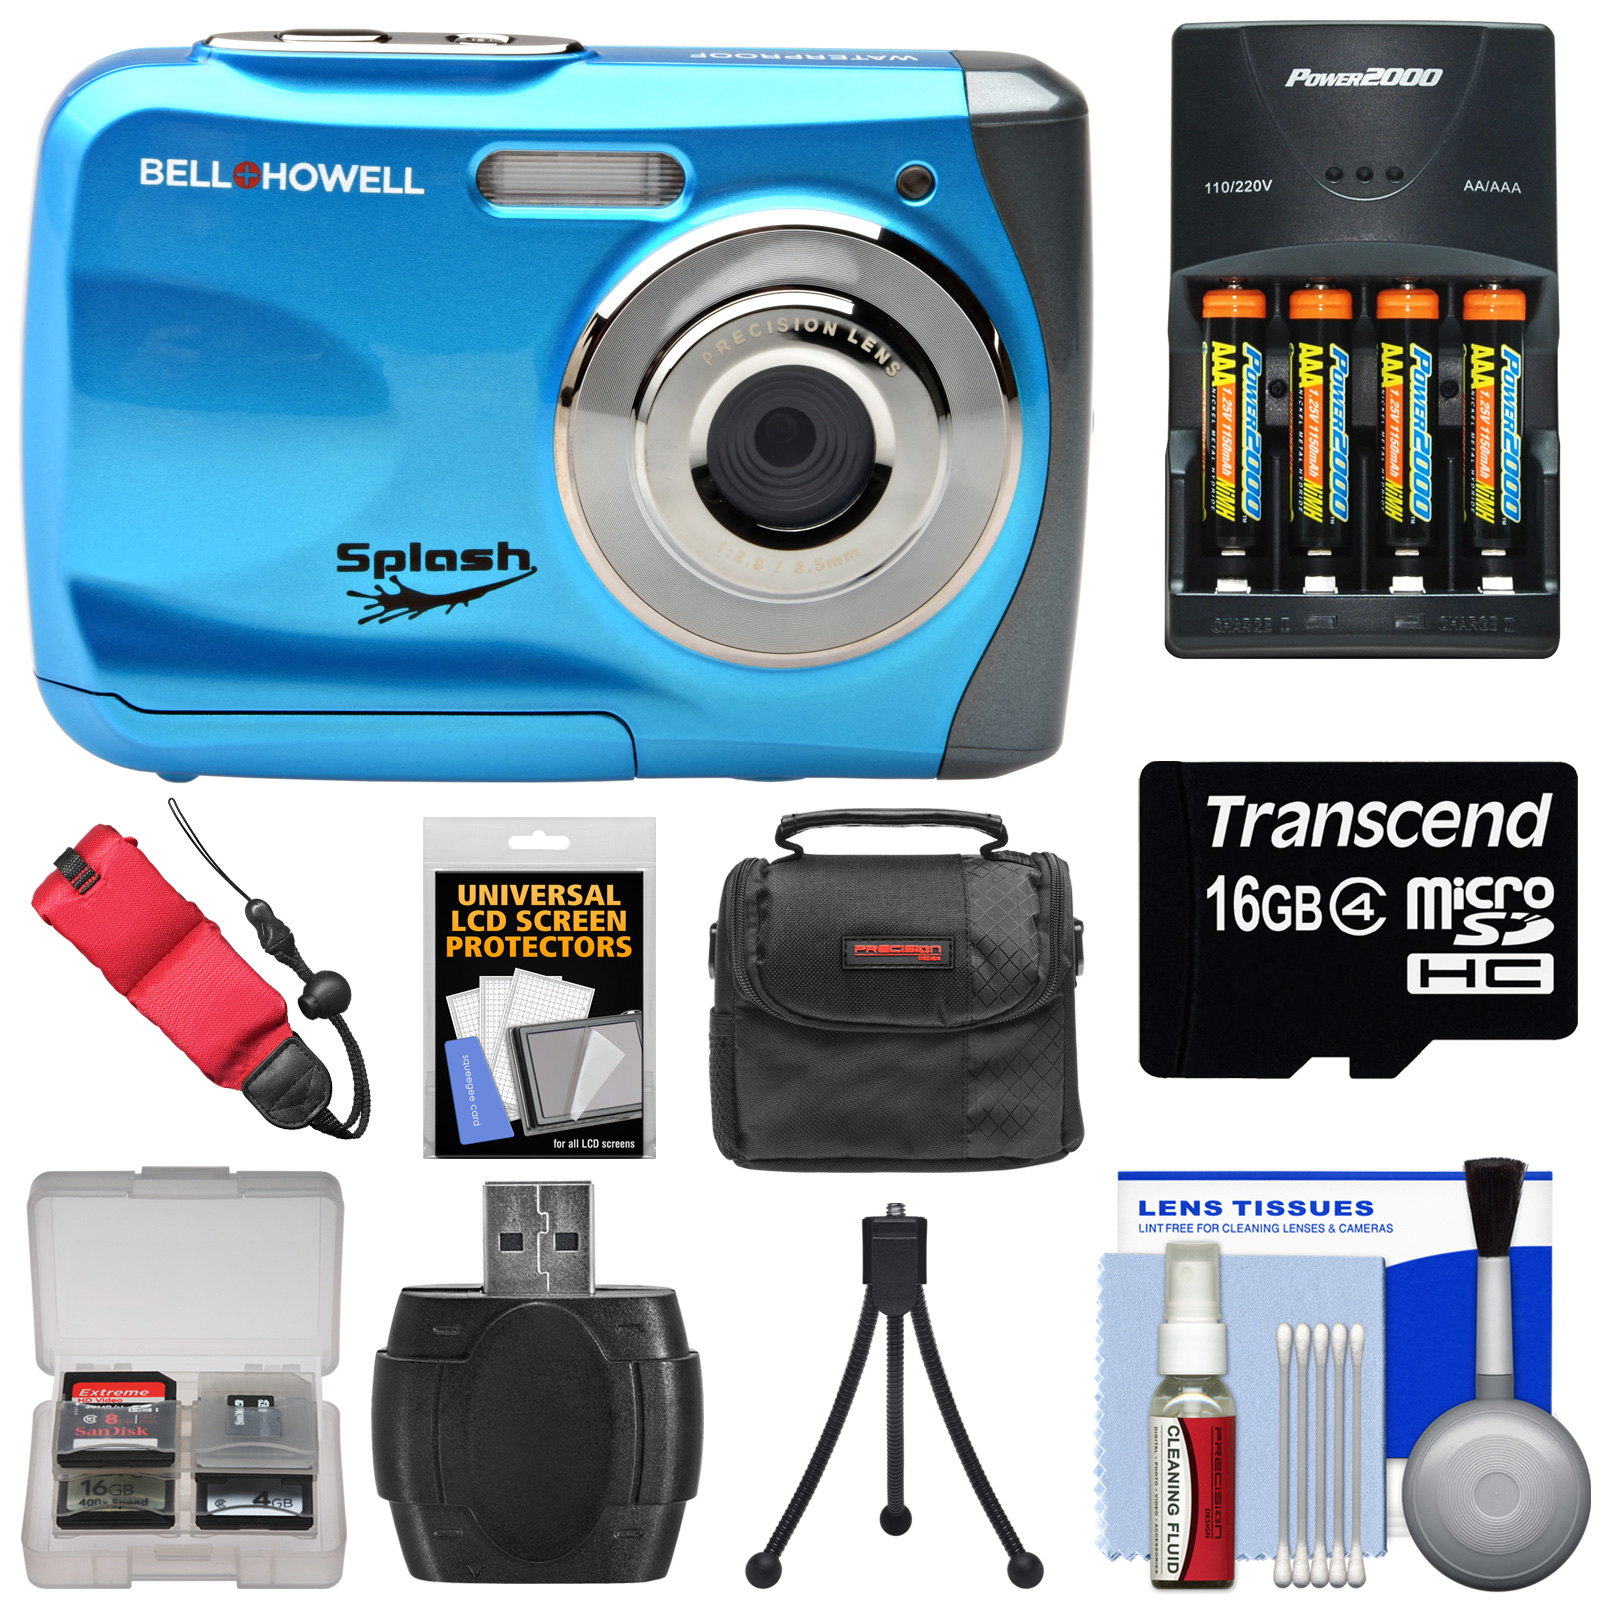 Bell & Howell Splash WP7 Waterproof Digital Camera (Black) with Batteries & Charger + 16GB Card + Case + Kit